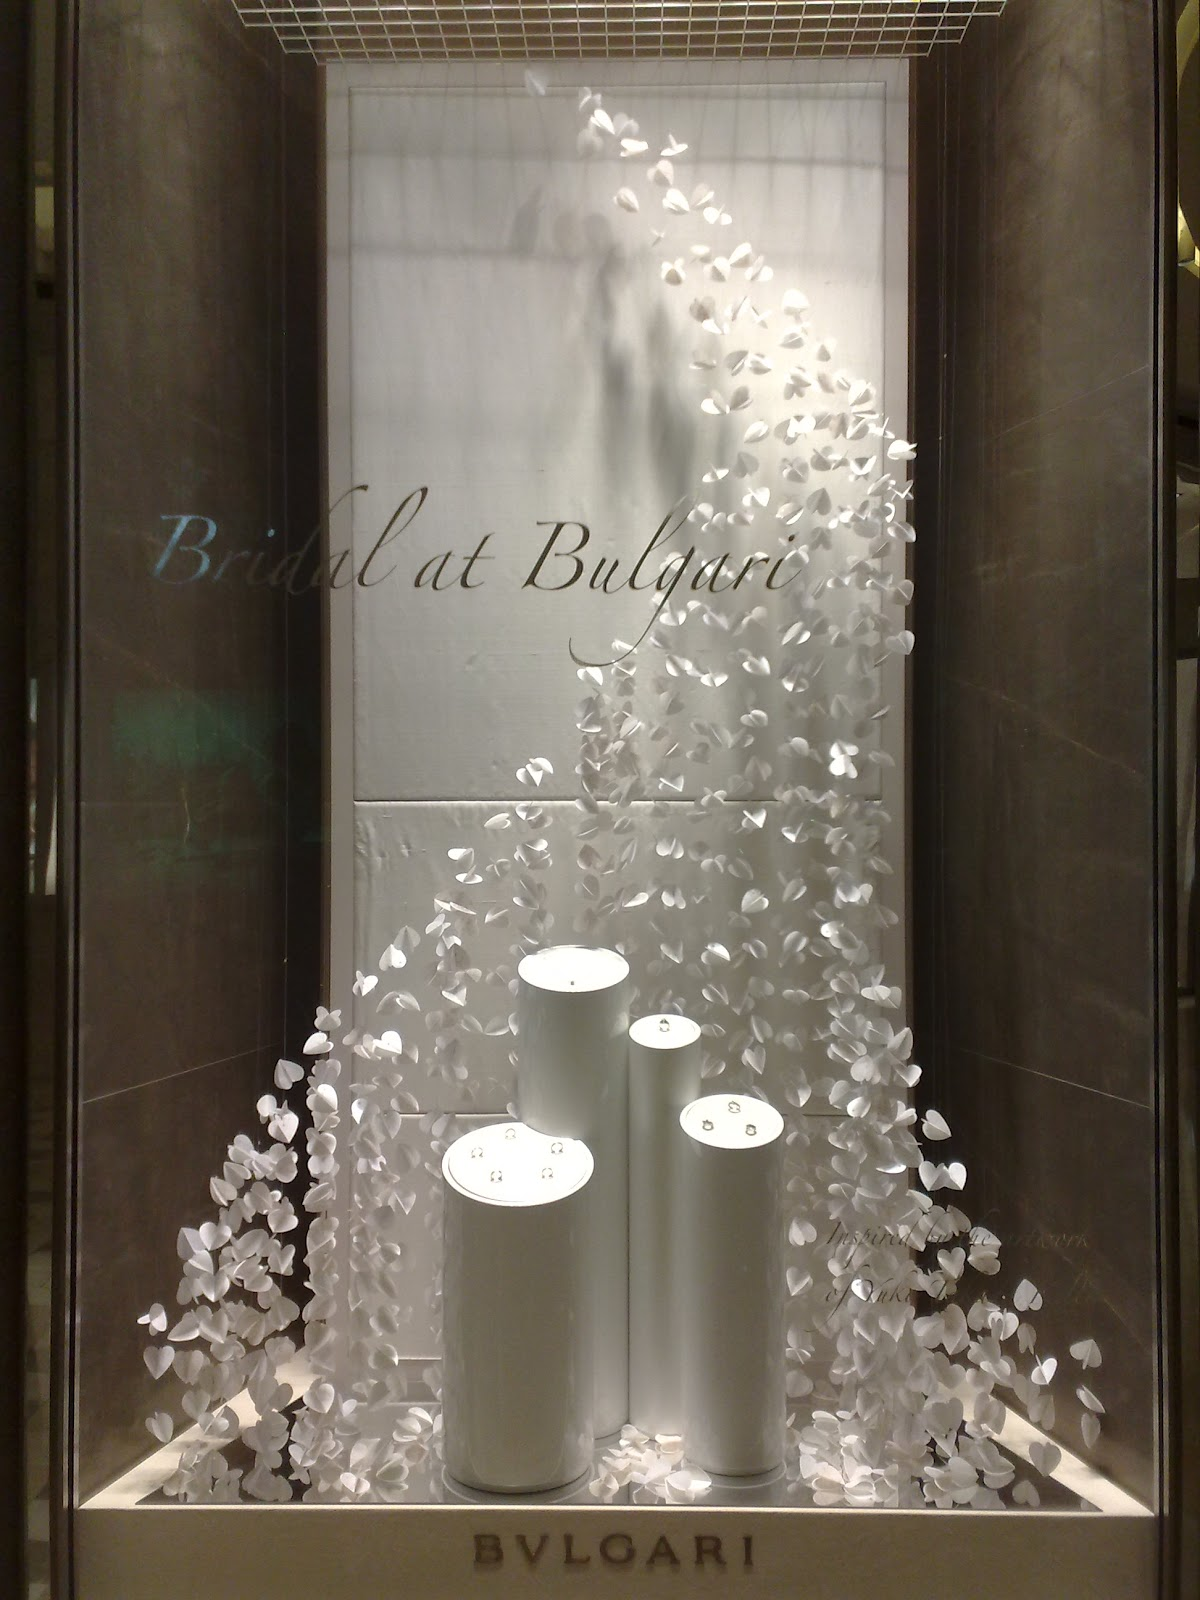 Beautiful Bulgari bridal window display with a curtain of white petals flowing upon the delicate jewelry pieces displayed.